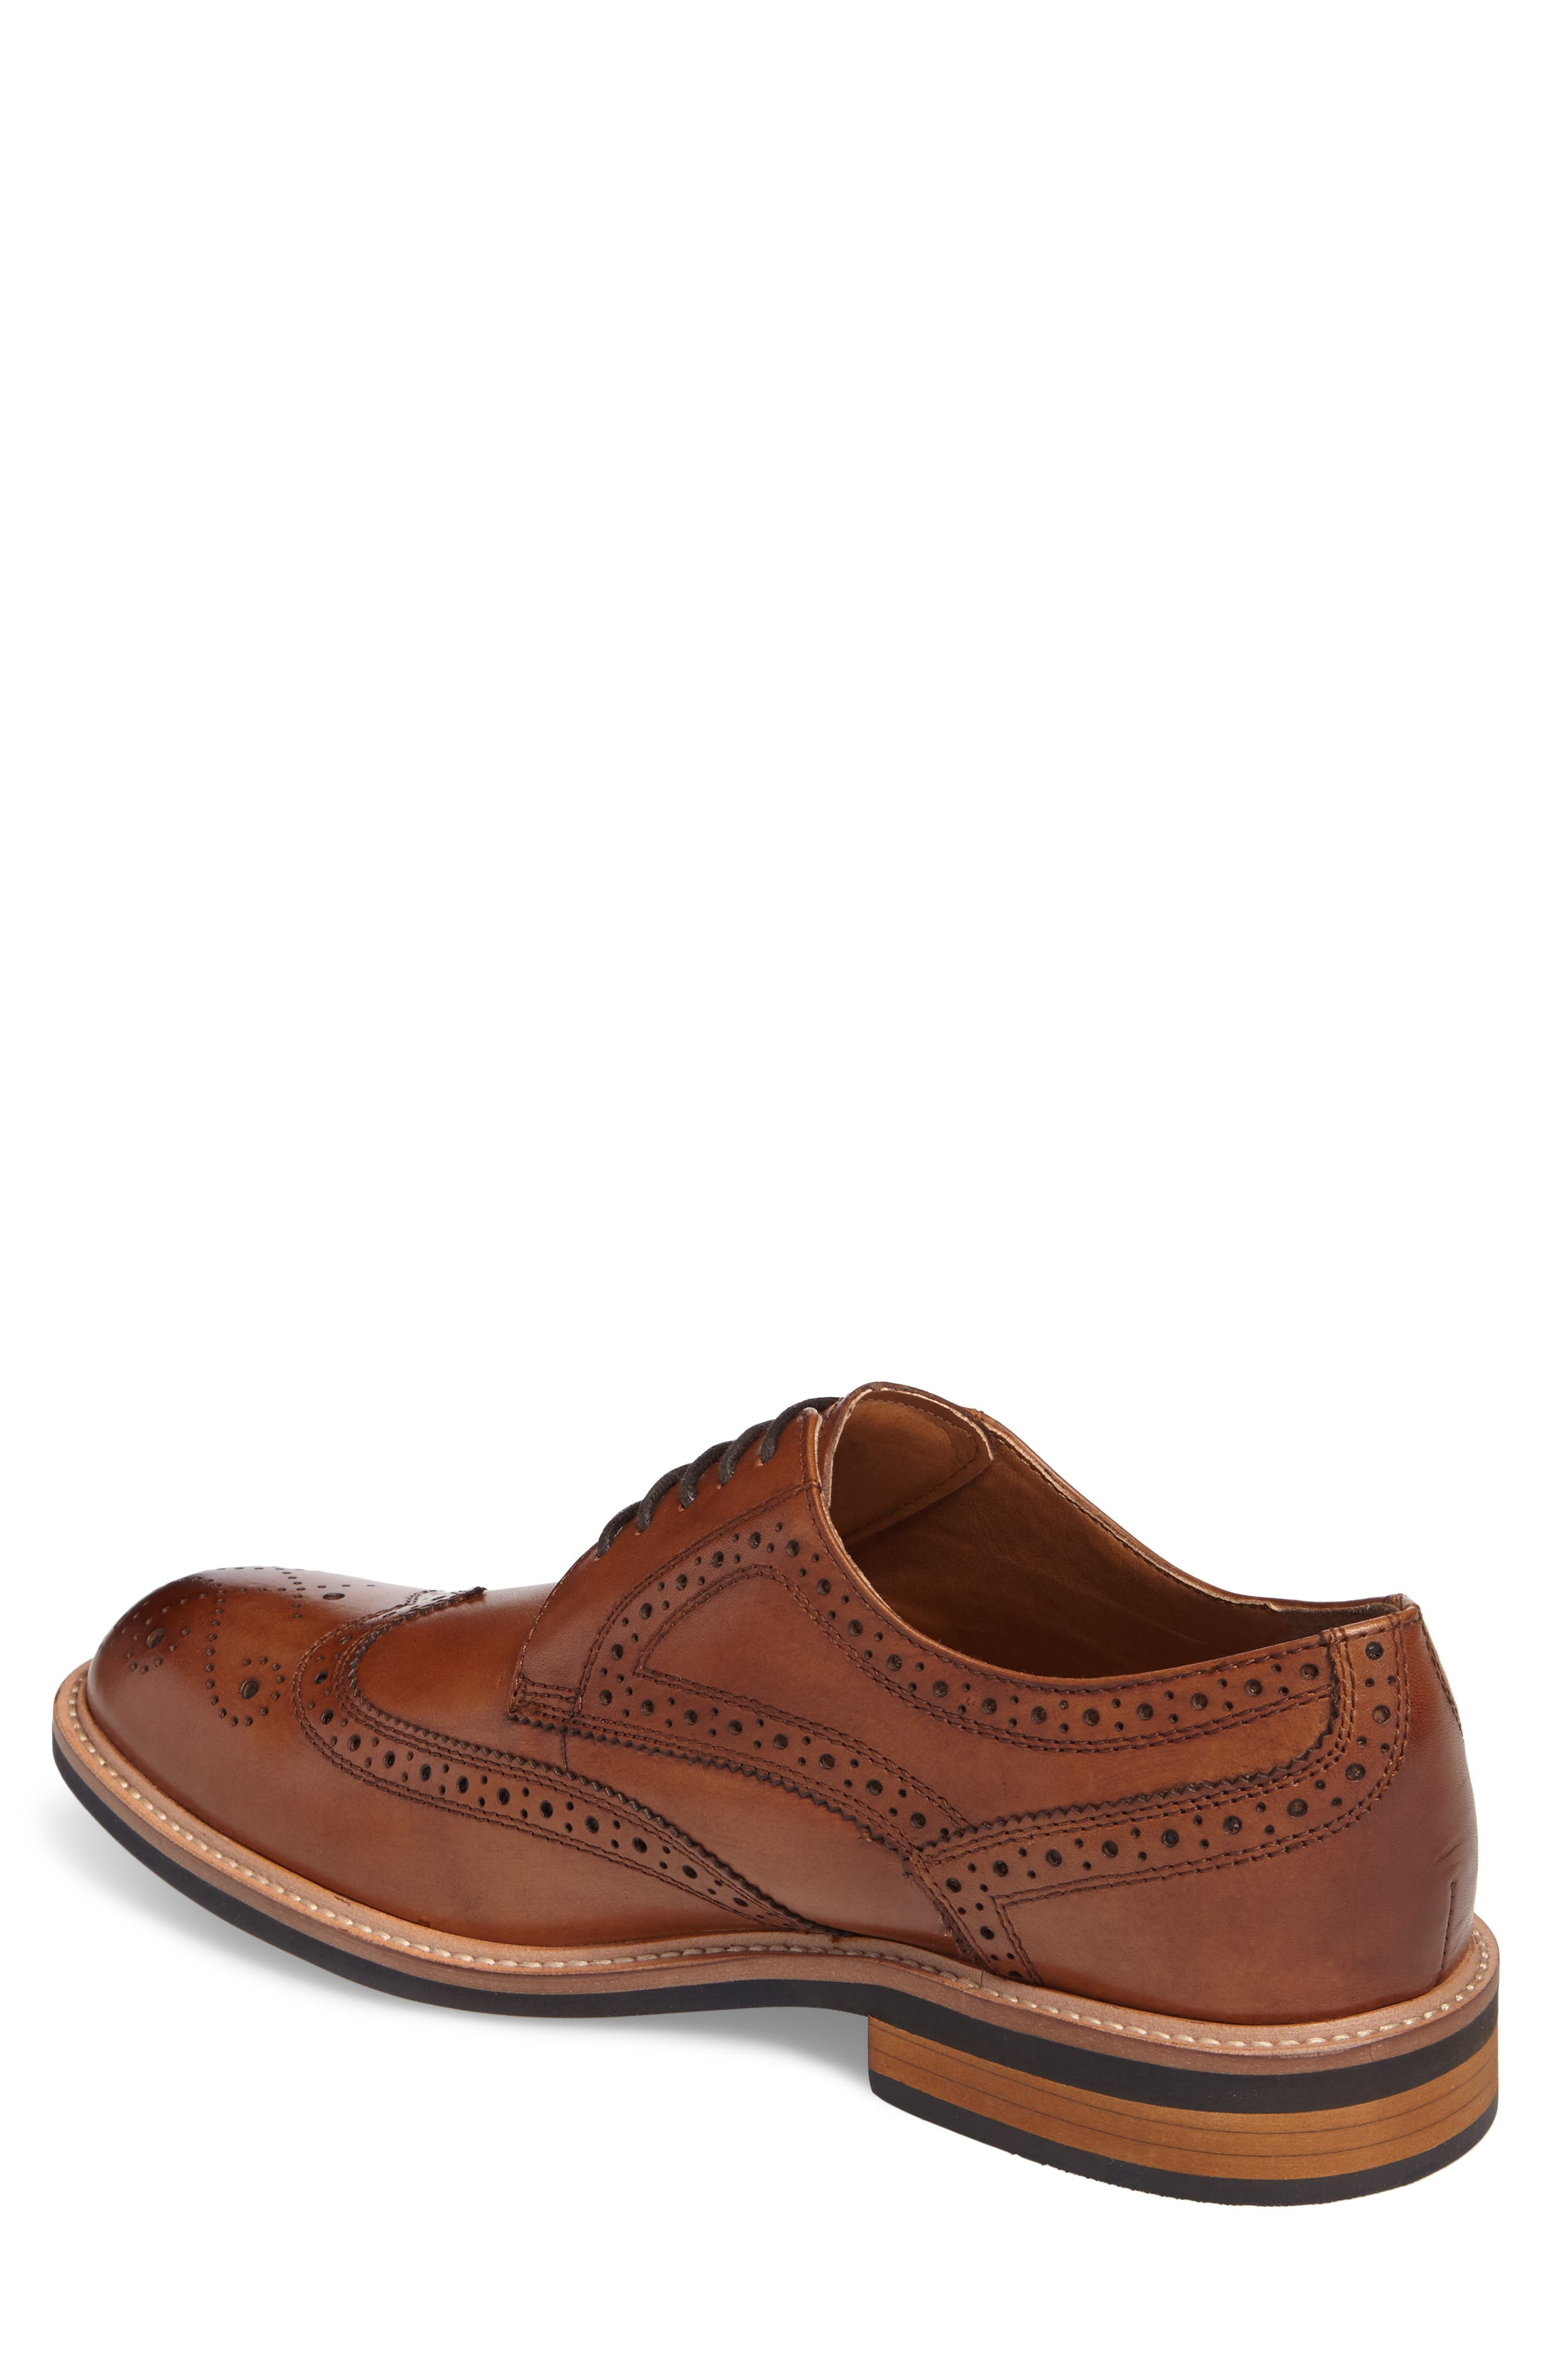 Kenneth Cole Reaction Wingtip,                             Alternate thumbnail 2, color,